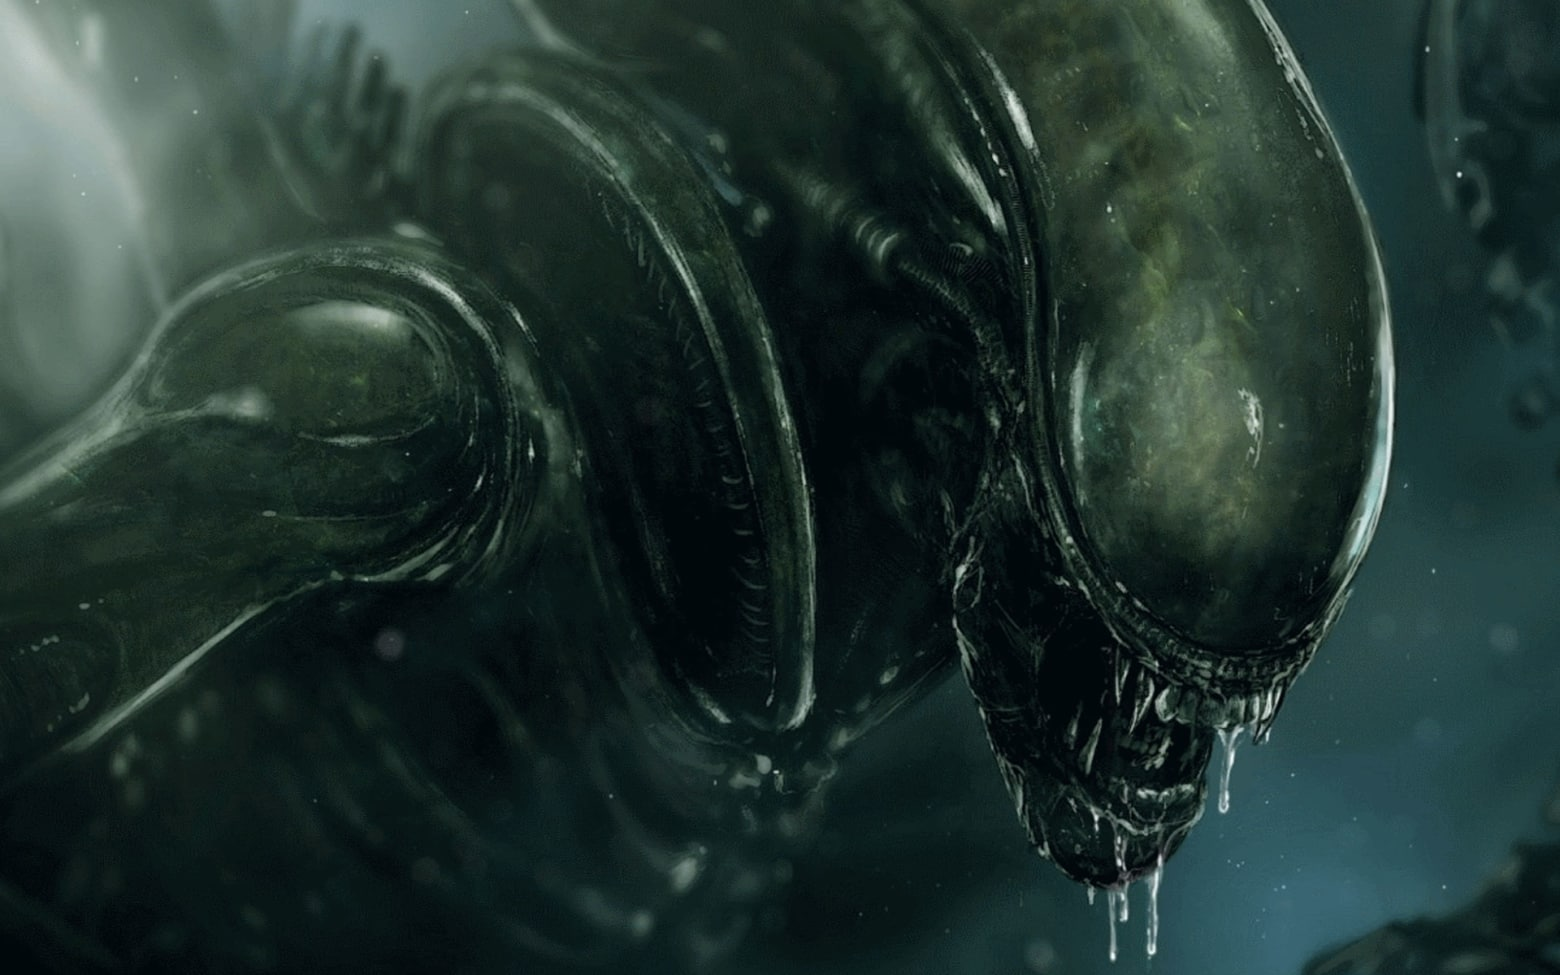 Interview with 'Alien' Co-Creator Dan O'Bannon